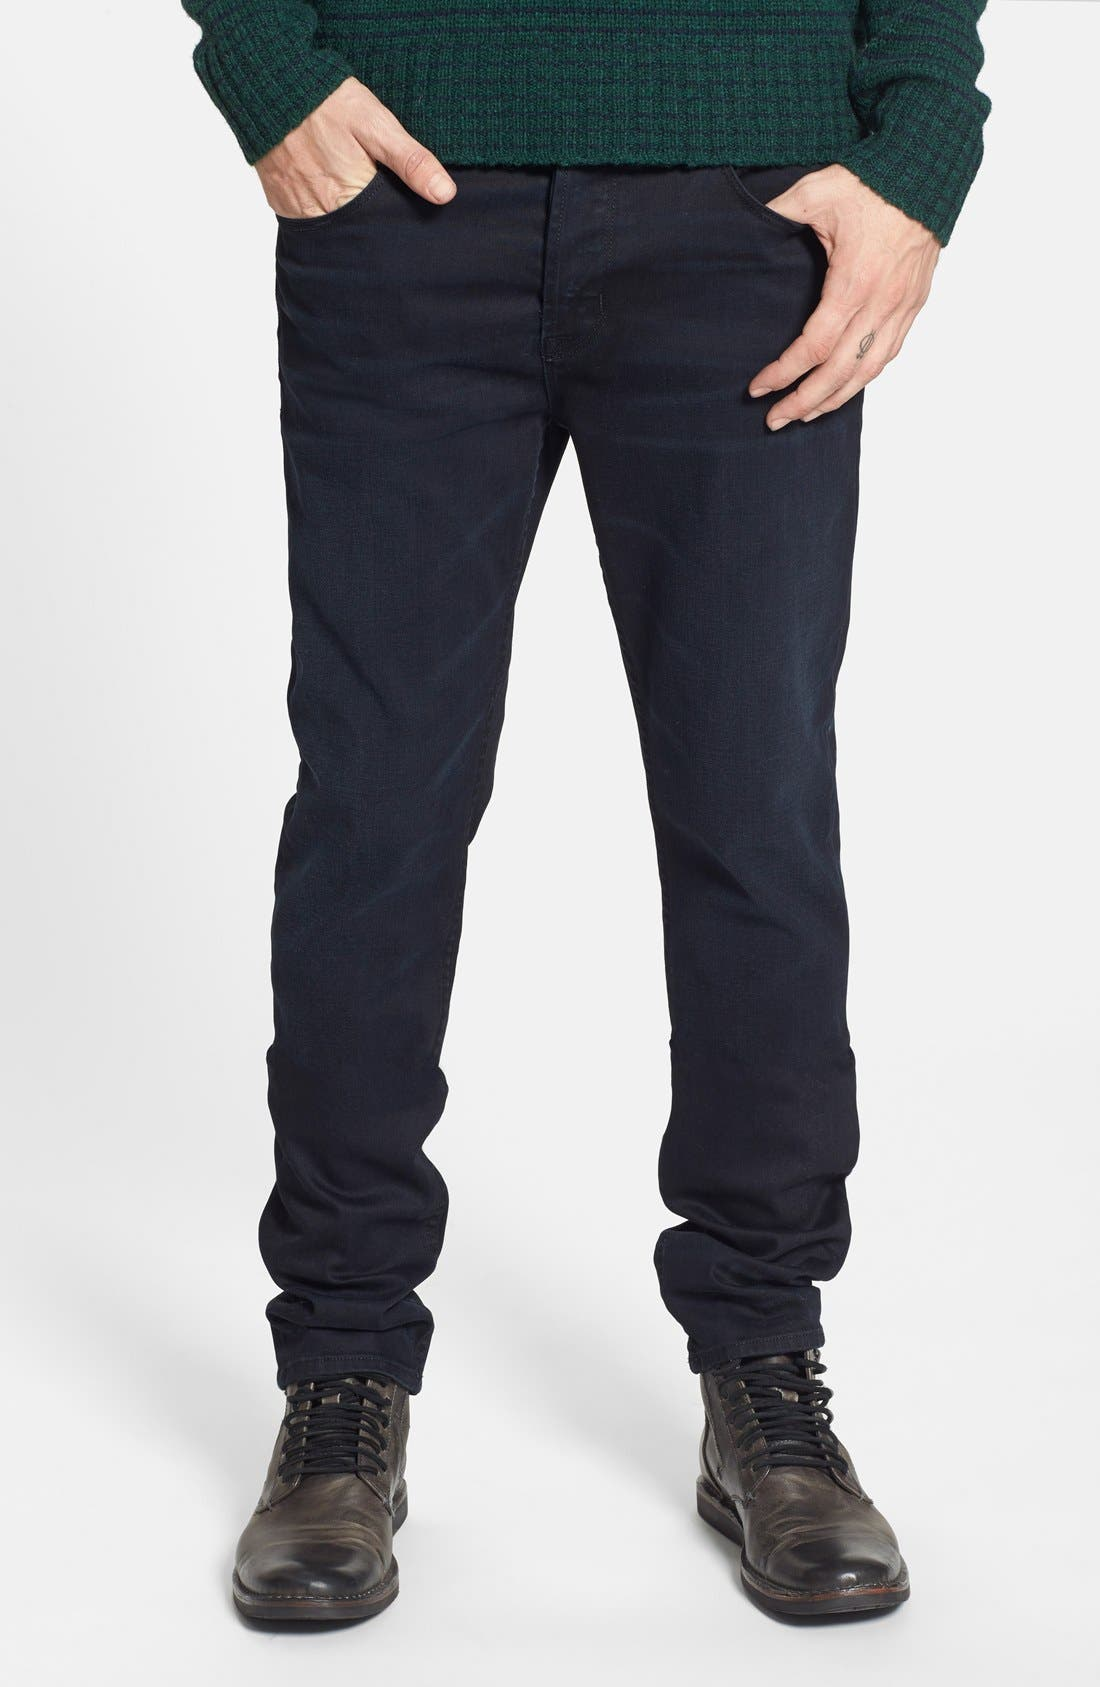 Alternate Image 1 Selected - Hudson Jeans 'Sartor' Slouchy Skinny Fit Jeans (Sanction)